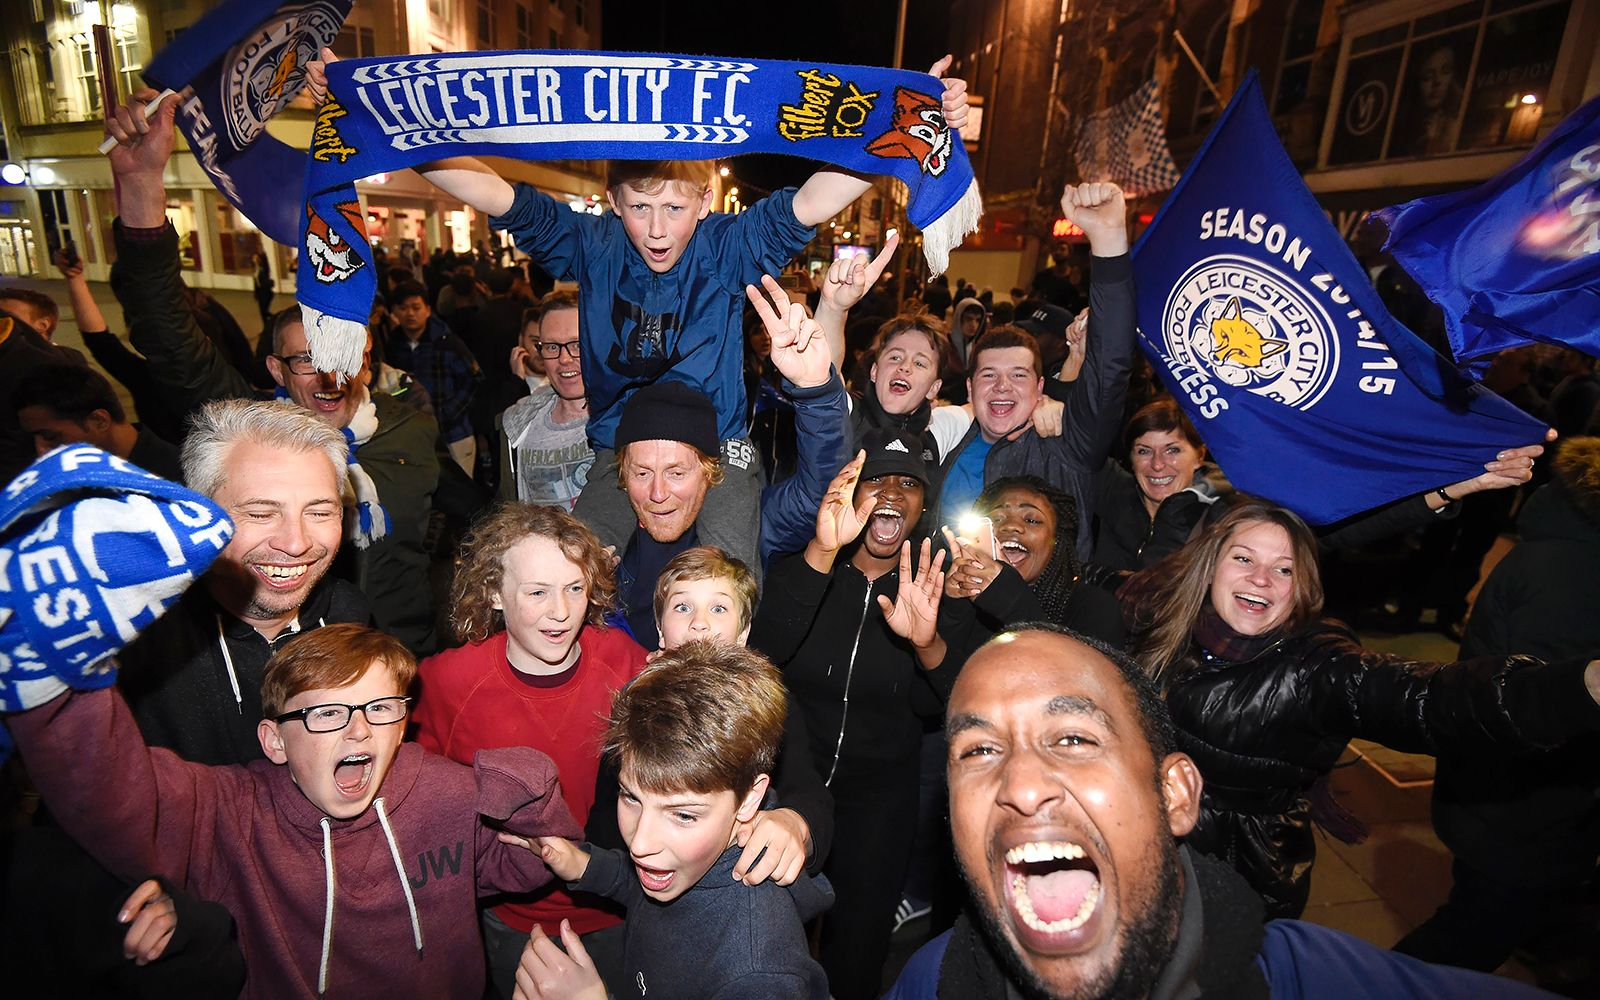 0ea9428d8ef After incredible win, Leicester City is still a complicated place